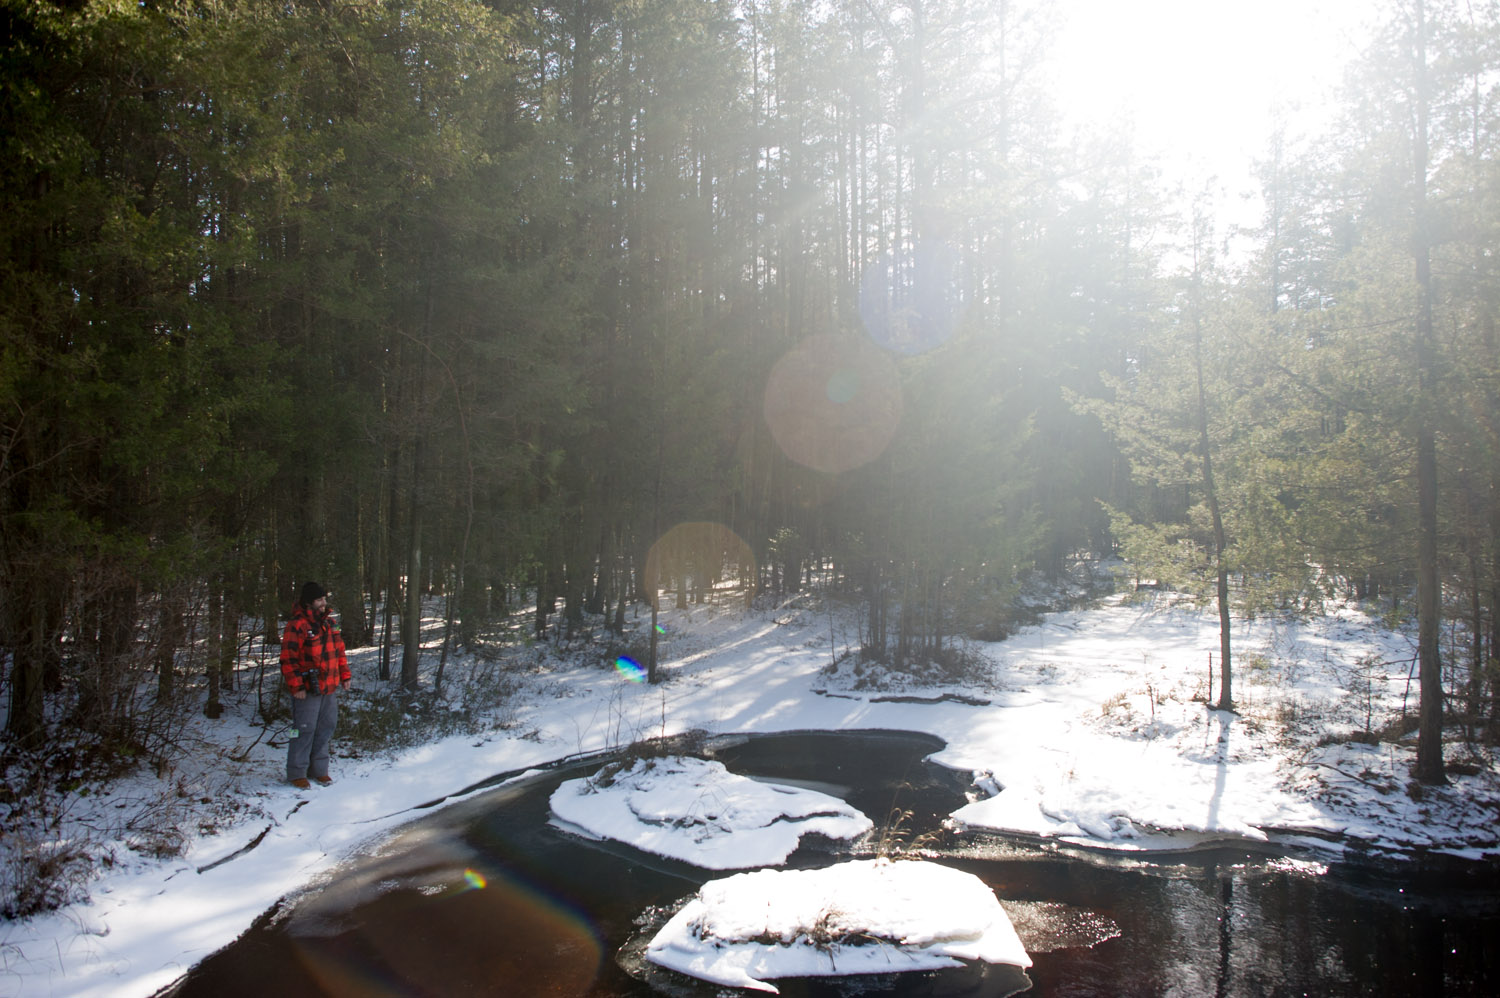 My friend Jesse standing on the edge of the icy river. Taken at Wharton State Forest in the NJ Pine Barrens.